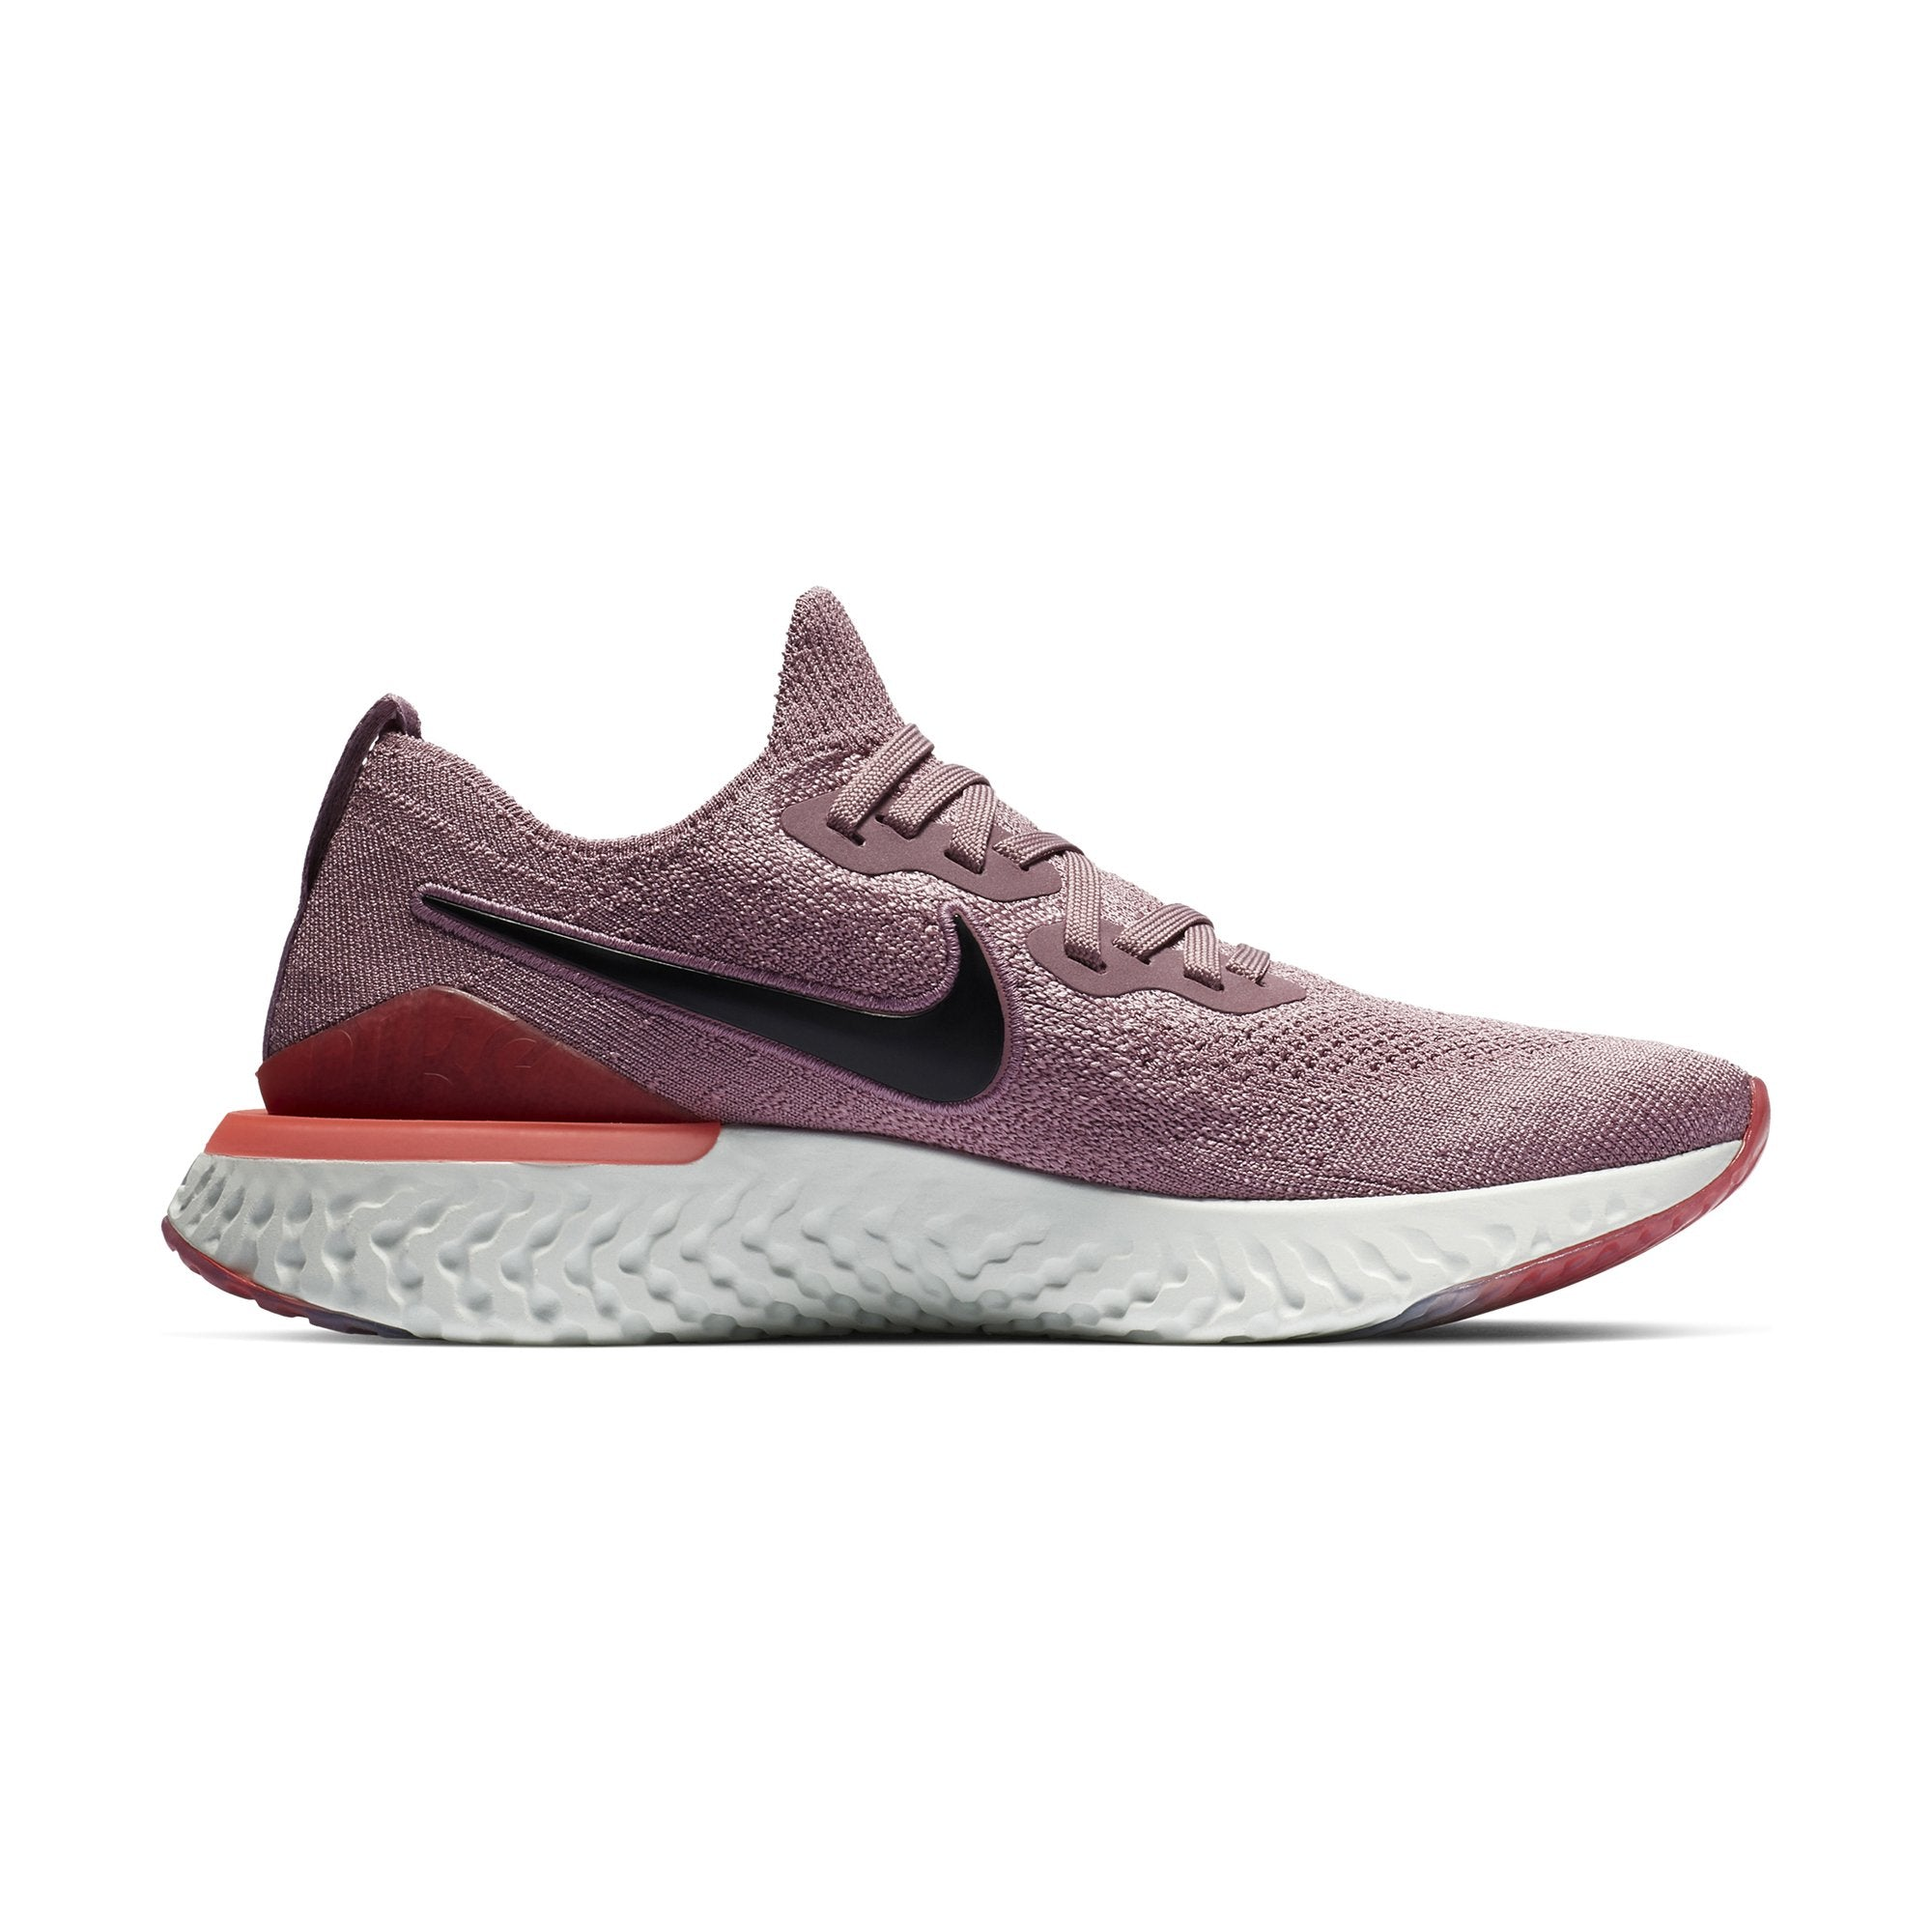 ffbf122d0fd9 Buy Nike Women Epic React Flyknit 2 Running Shoes